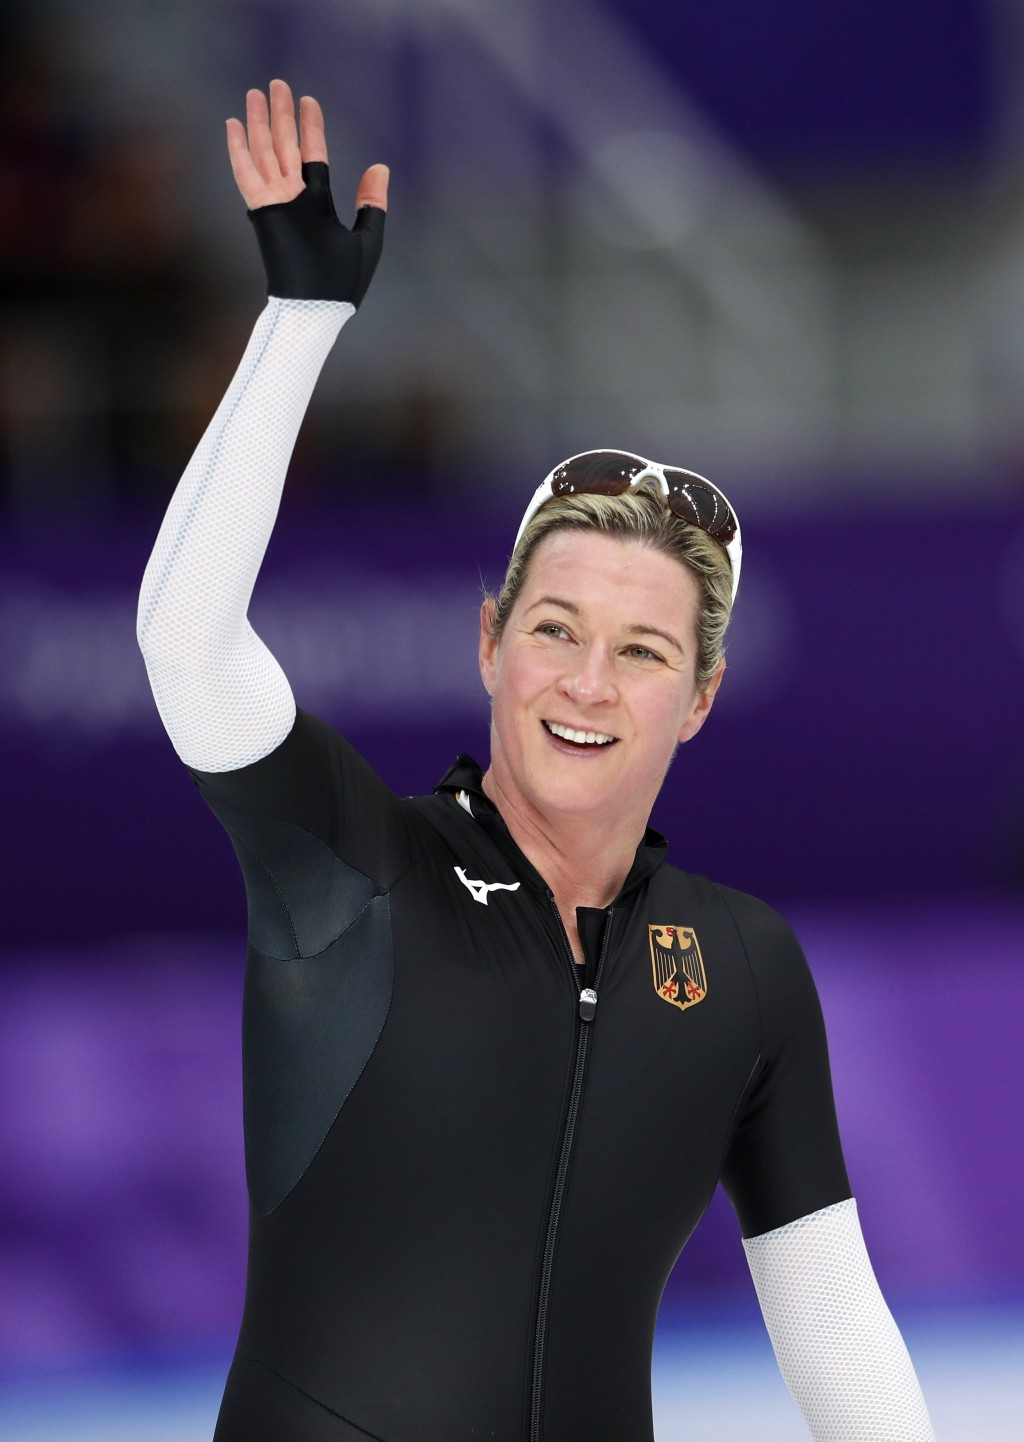 Claudia Pechstein, of Germany waves to fans after competing during the women's 3,000 meters race at the Gangneung Oval at the 2018 Winter Olympics in